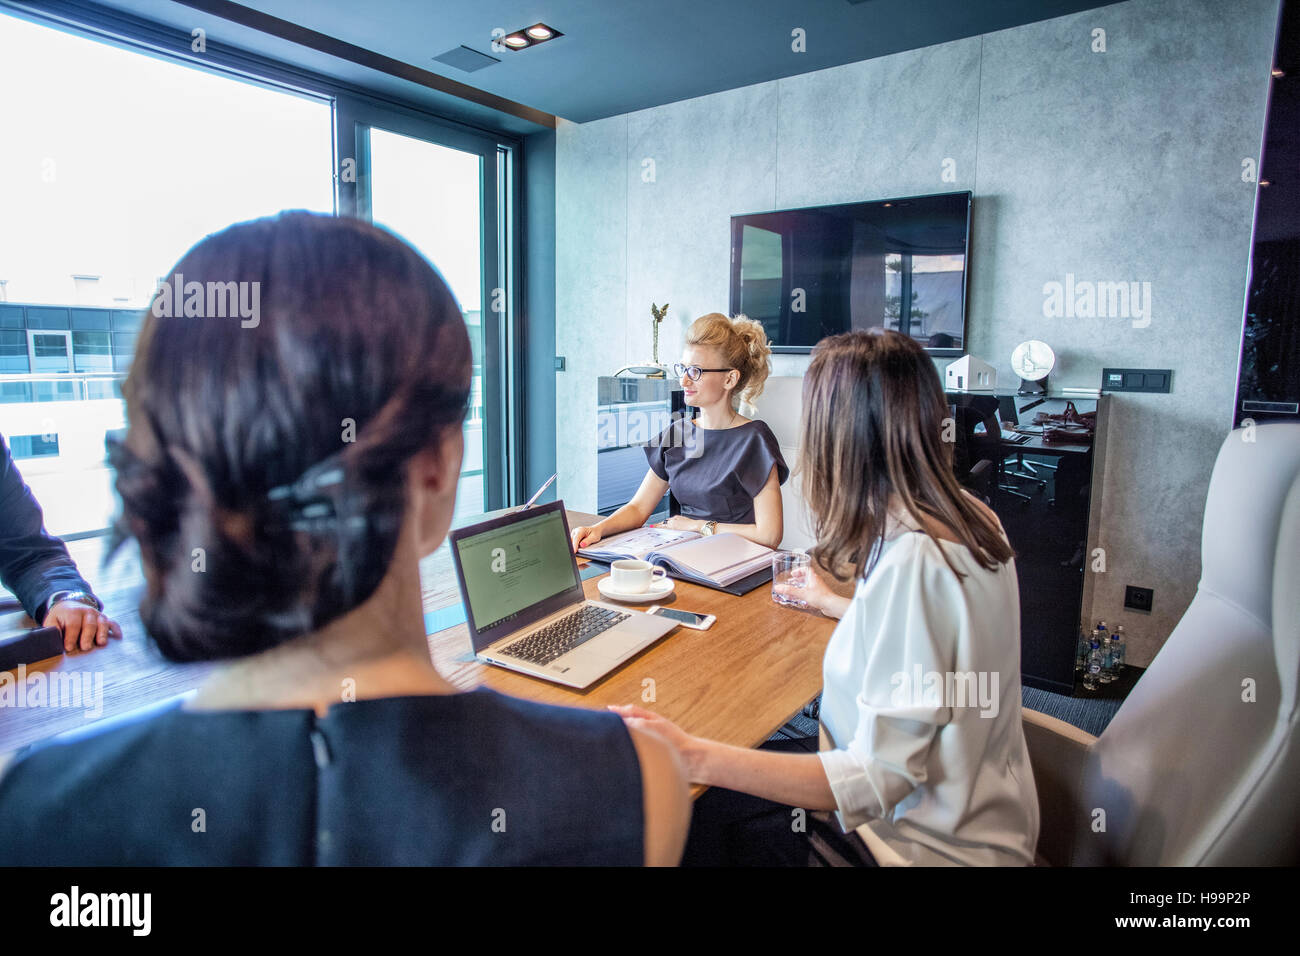 Businesswomen having a meeting in conference room - Stock Image